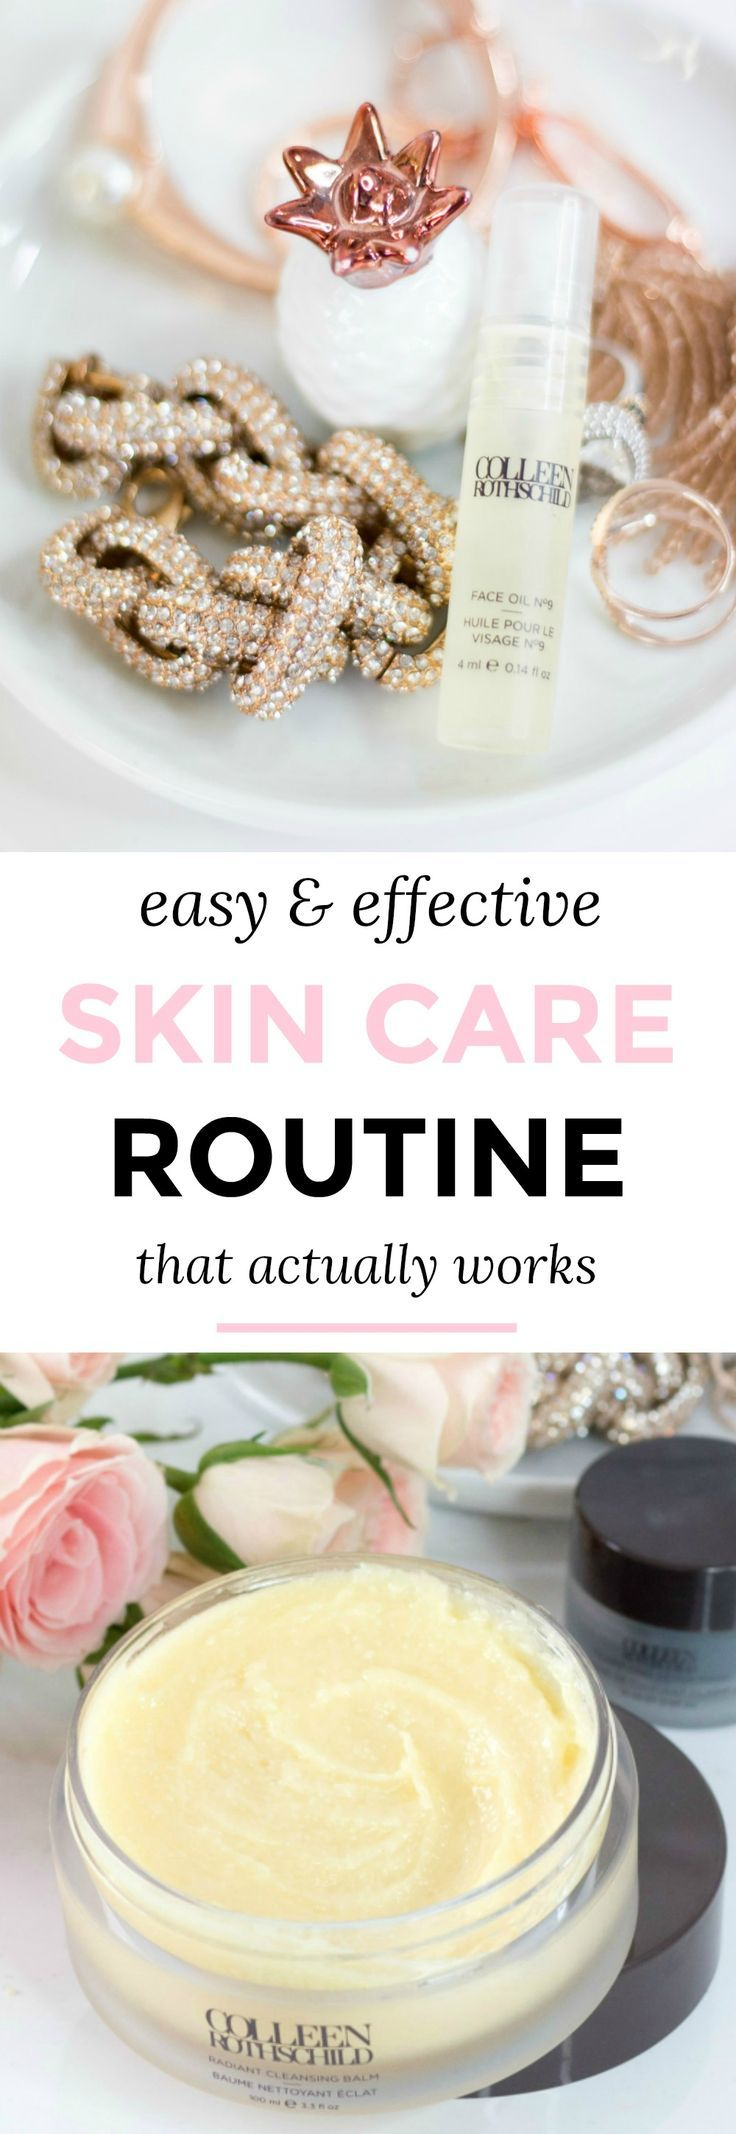 An easy and effective skin care routine for all skin that types that actually works  + the 7 skincare products that every woman needs! #colleenrothschild sponsored by Colleen Rothschild | skin care routine, luxury skin care, the best skin care products, luxury beauty, skin care review #skincare #beauty